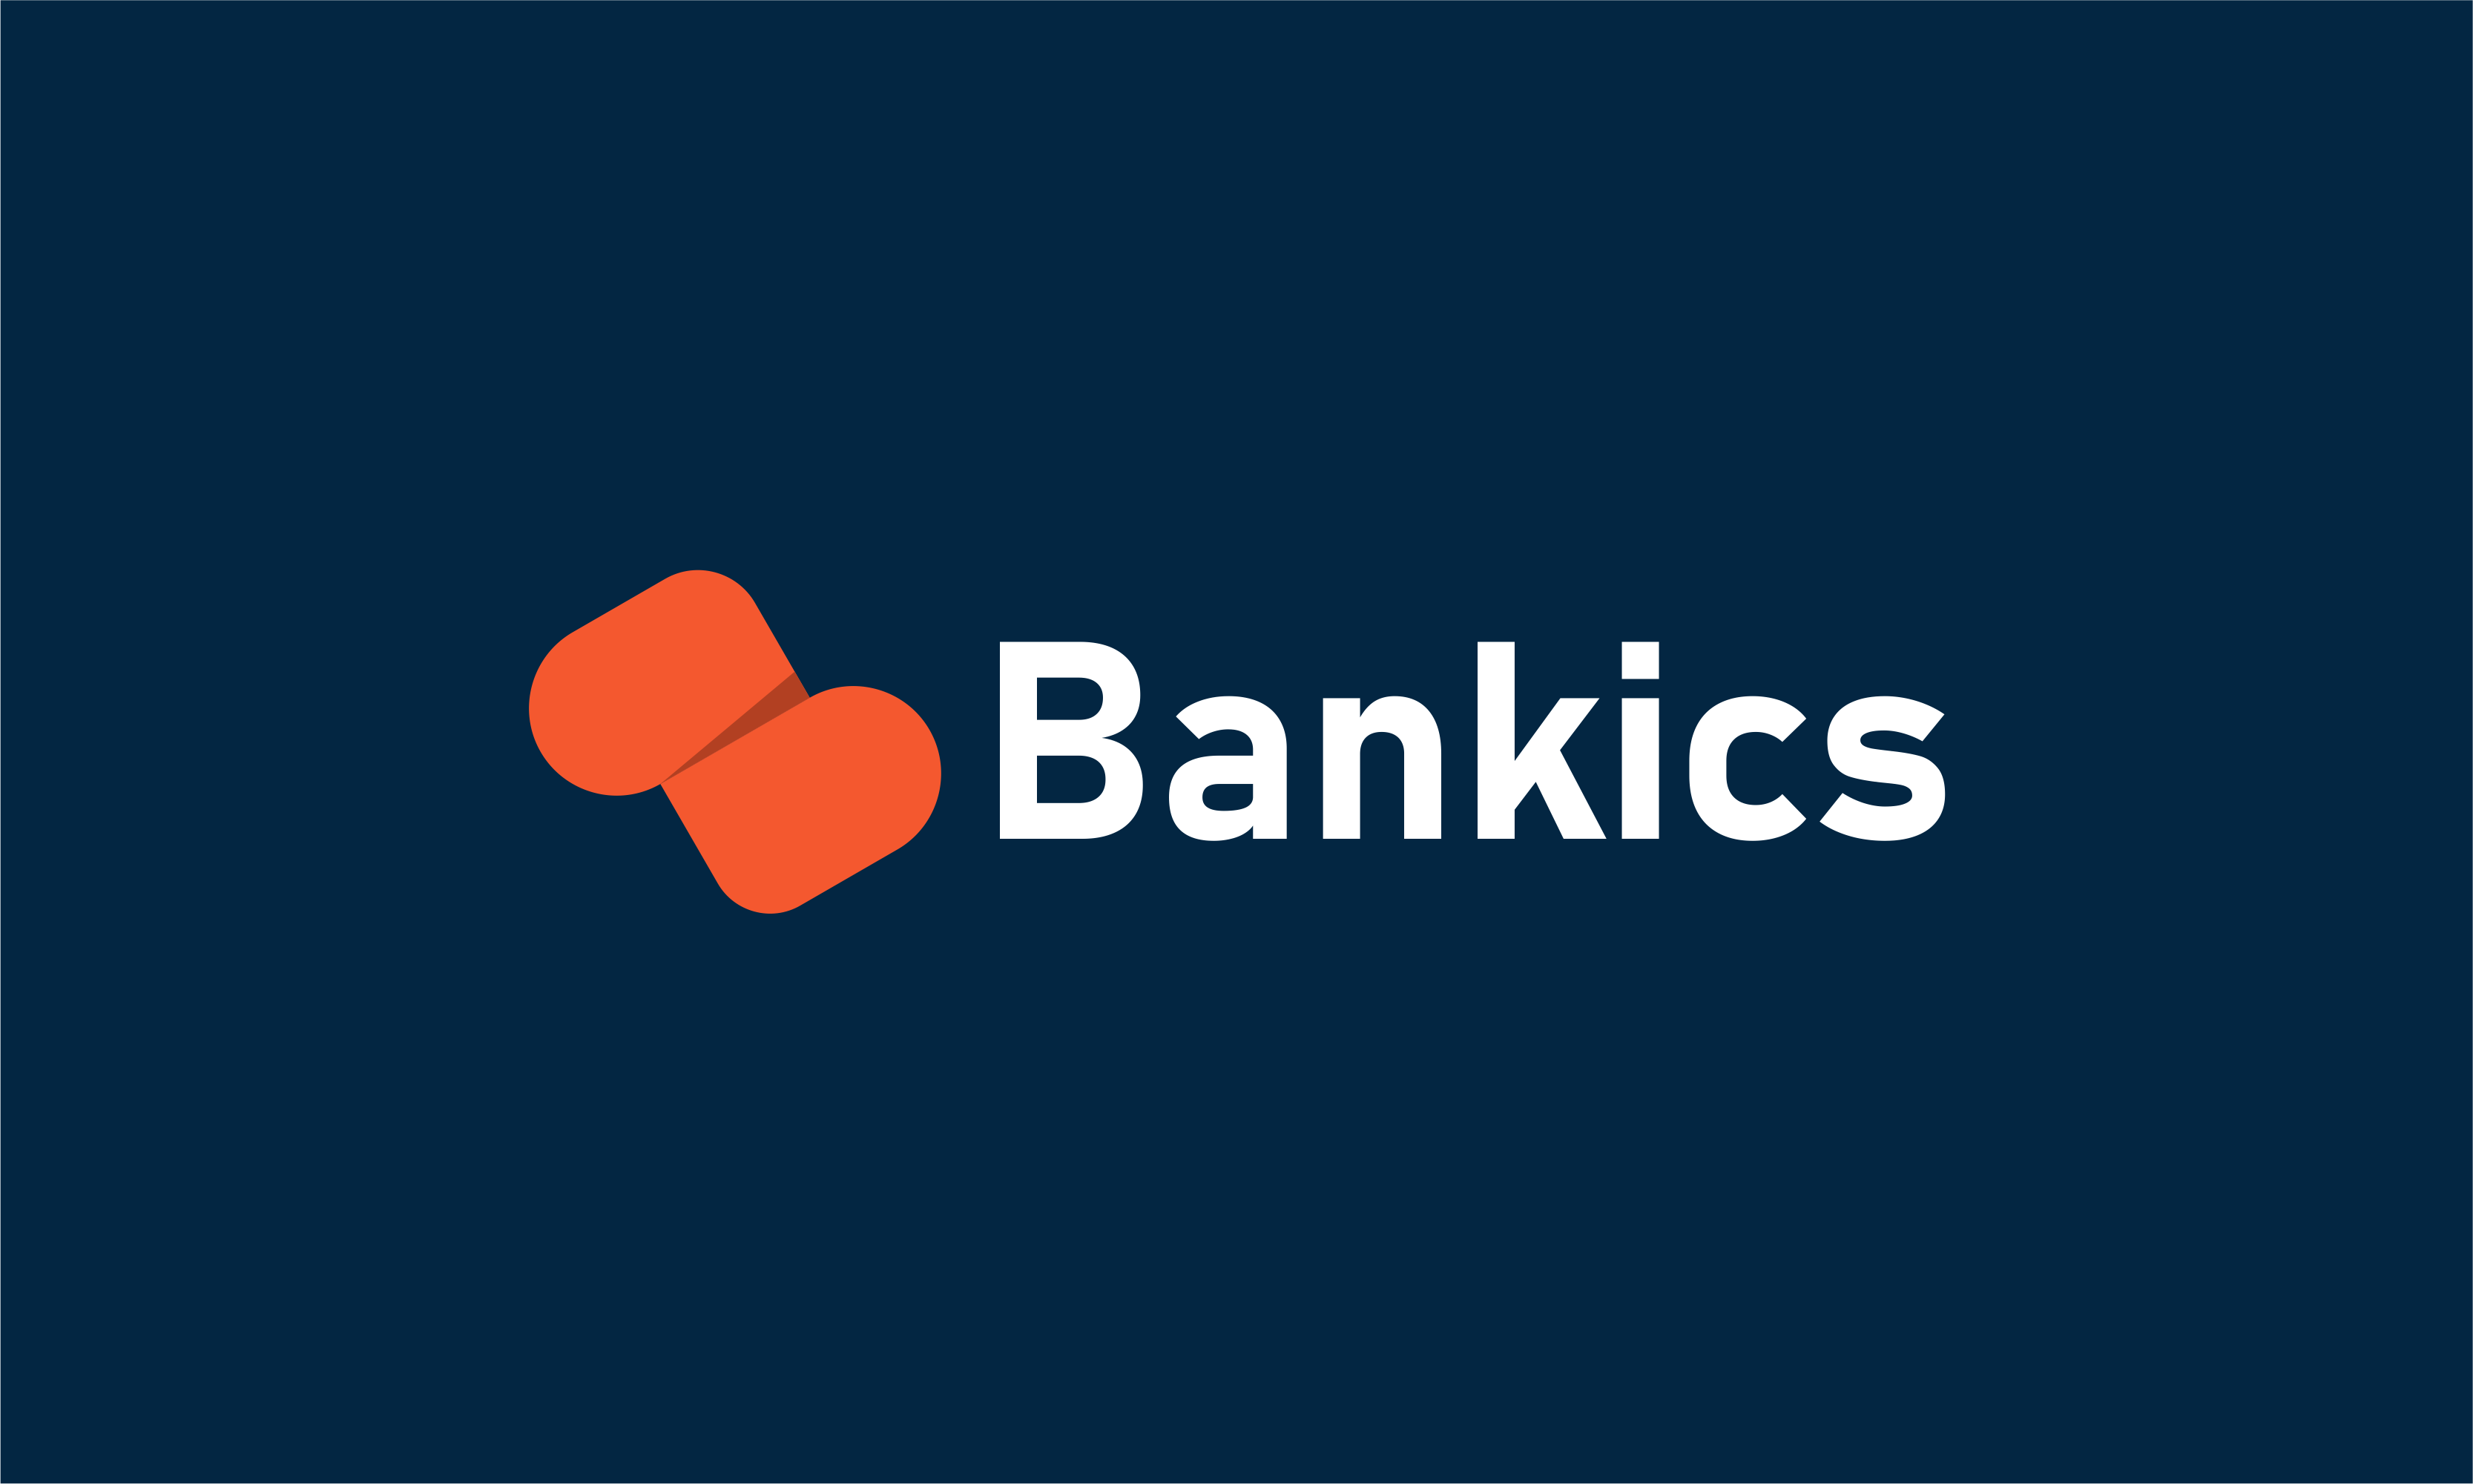 Bankics - Banking business name for sale